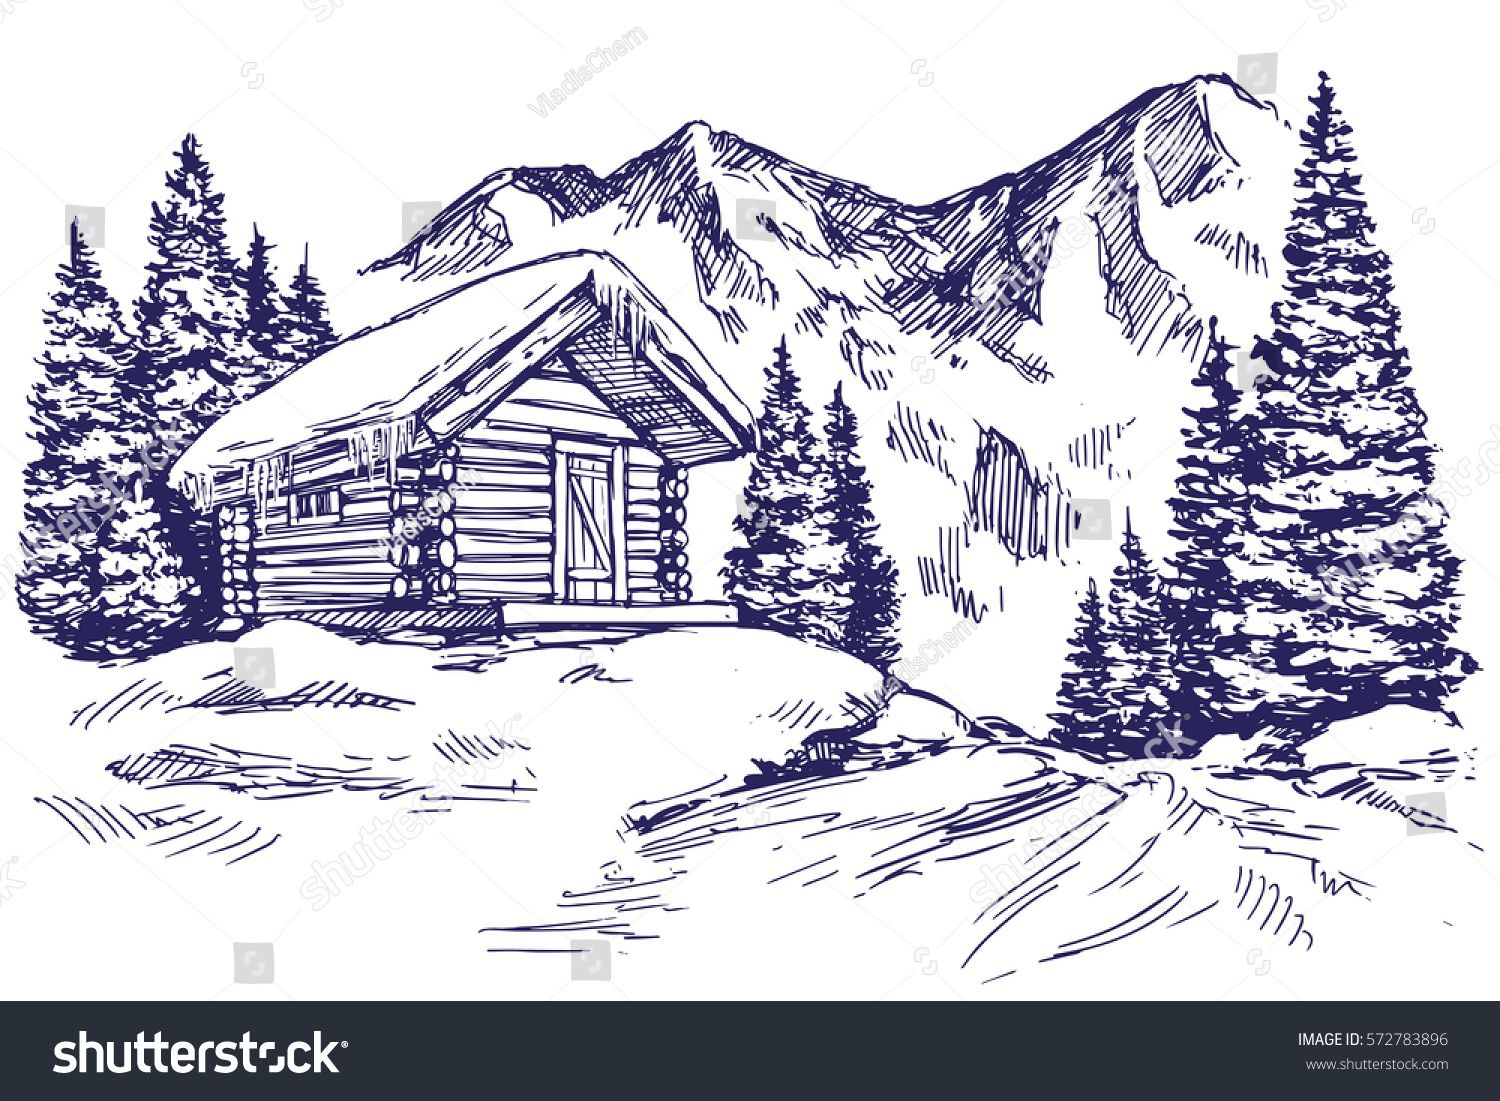 House In Mountain The Snow Landscape Hand Drawn Vector Illustration Sketch Cool Art Drawings Mountain Drawing Mountain Illustration